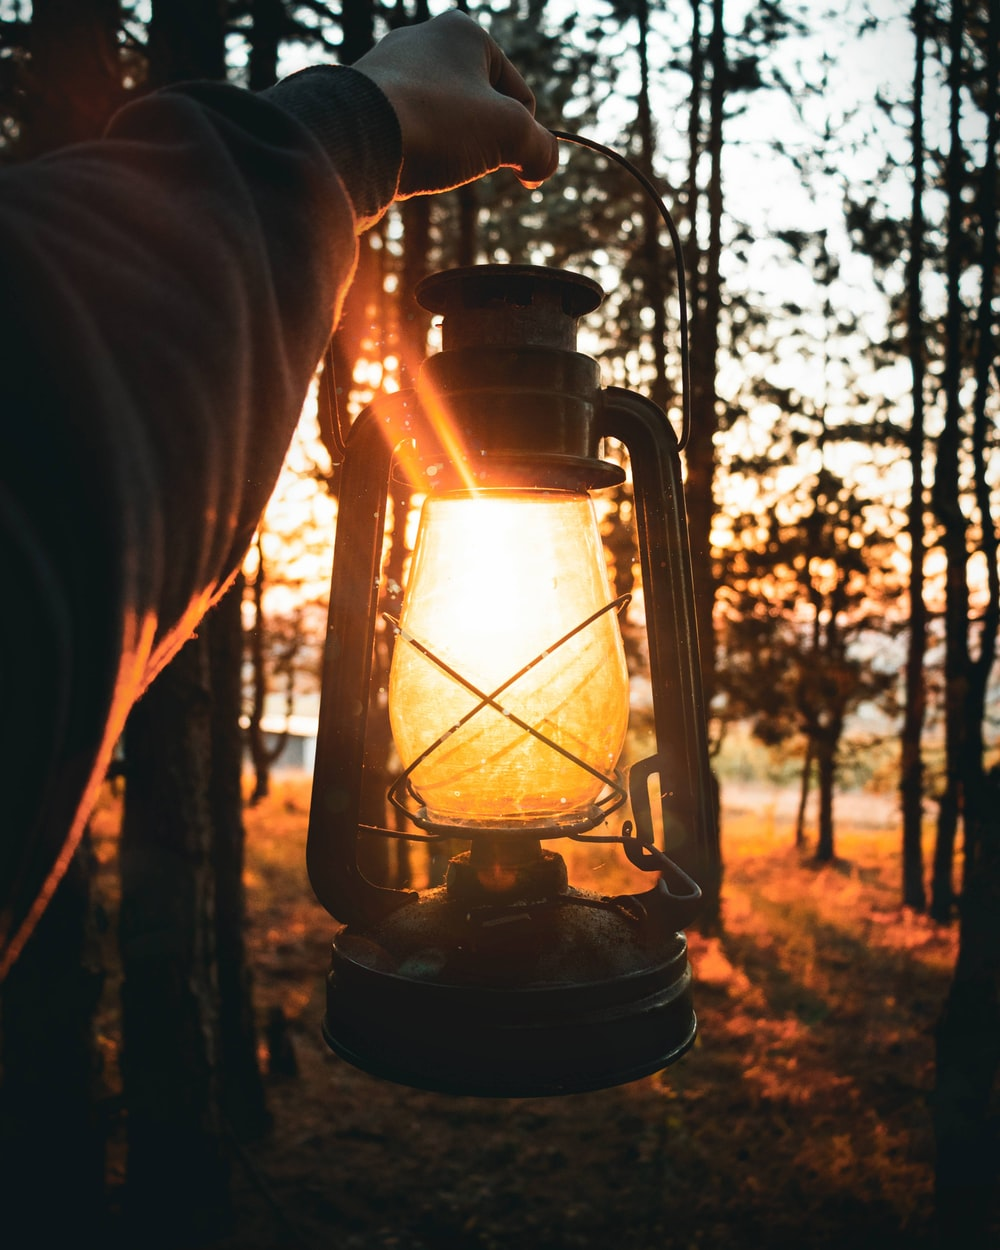 person holding lantern lamp near trees during daytime